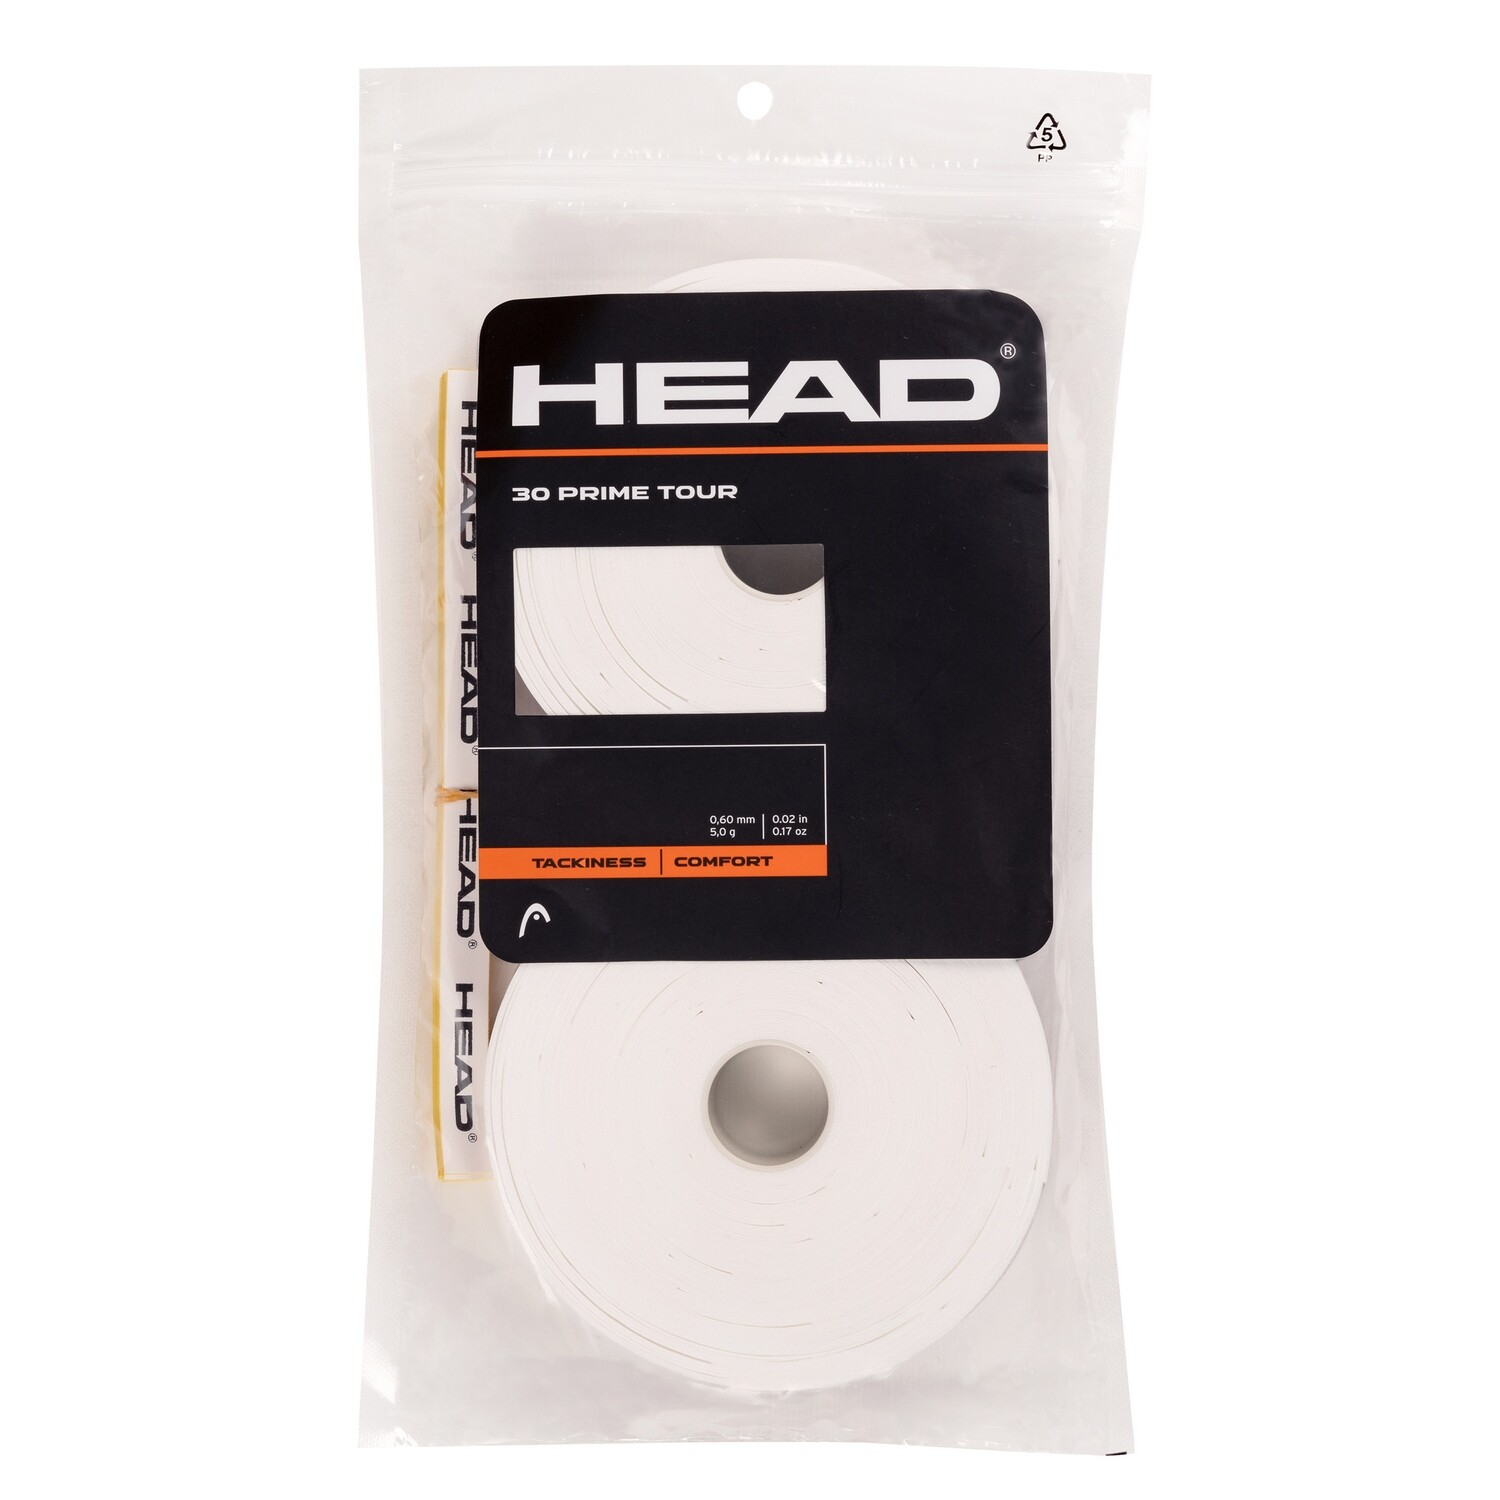 Head Prime Tour Overgrips 30 Pack - White